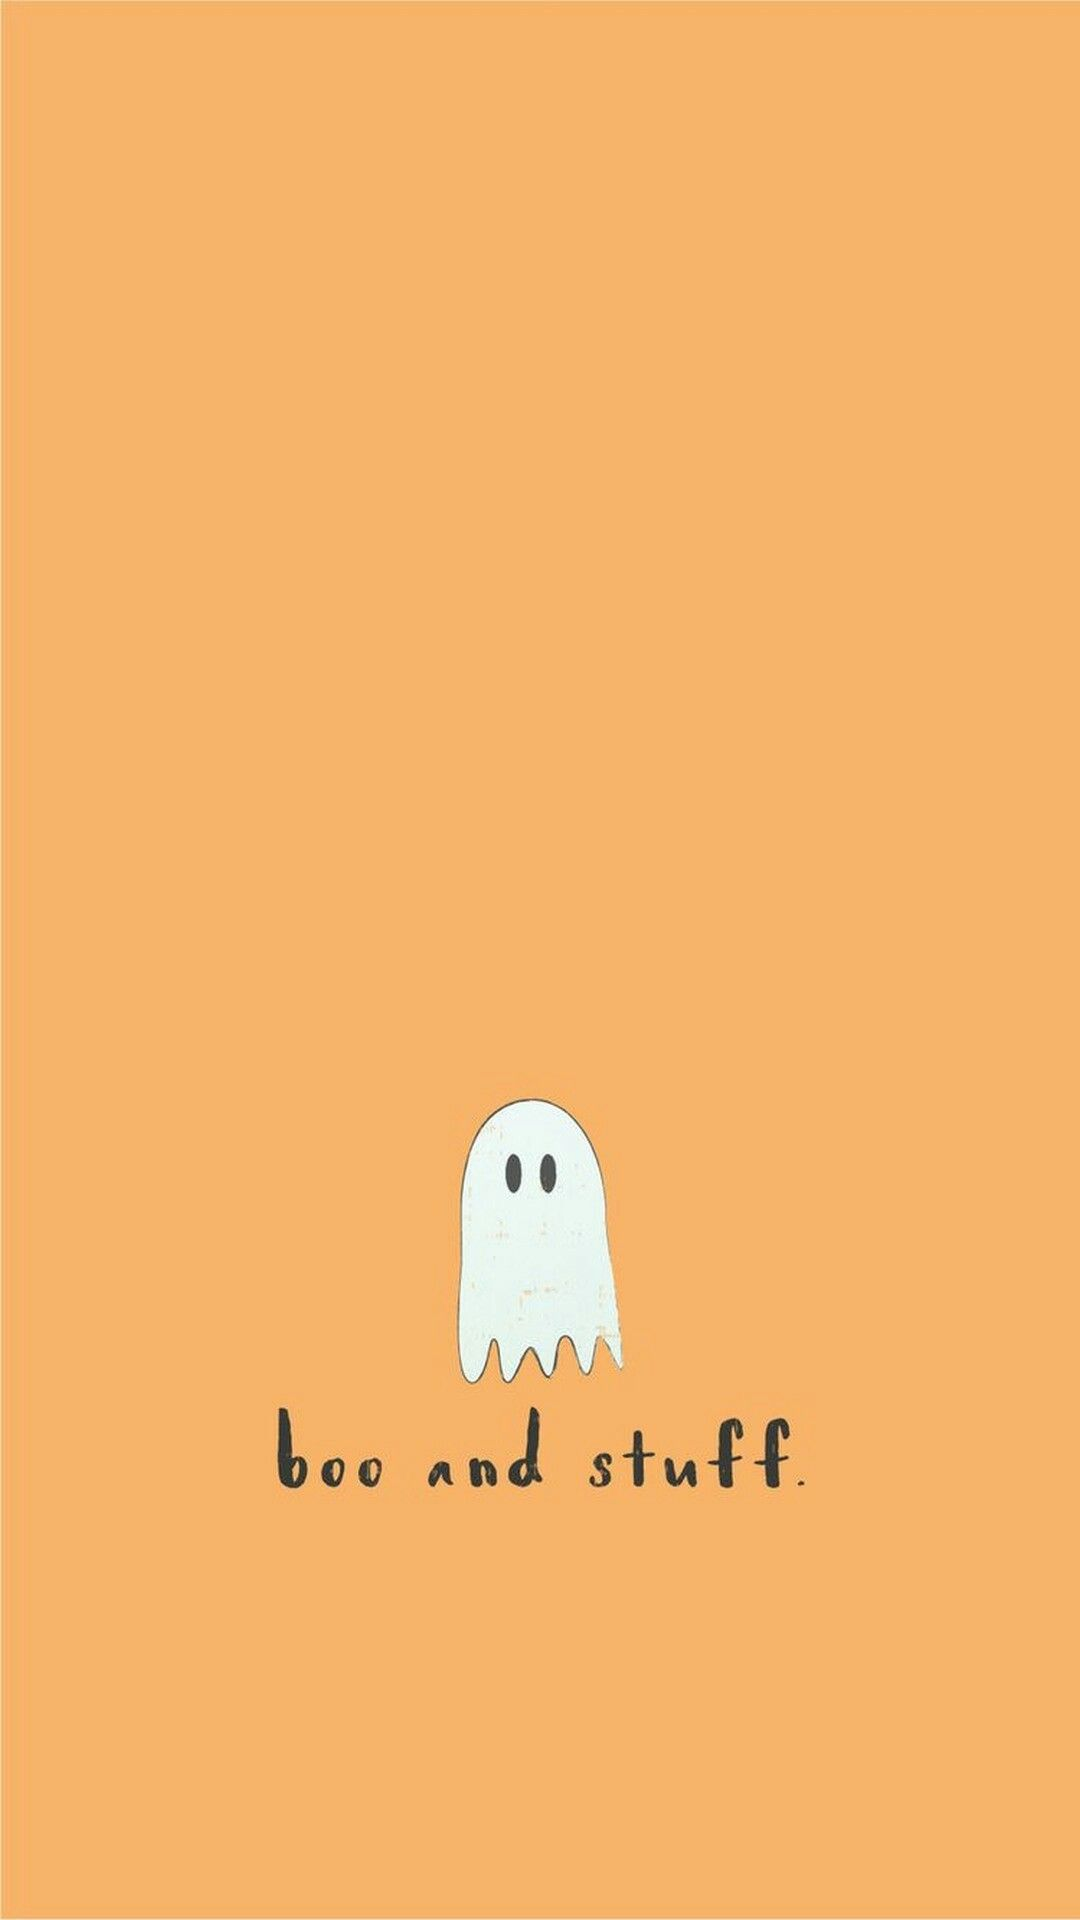 boo and stuff | phone backgrounds | pinterest | iphone wallpaper